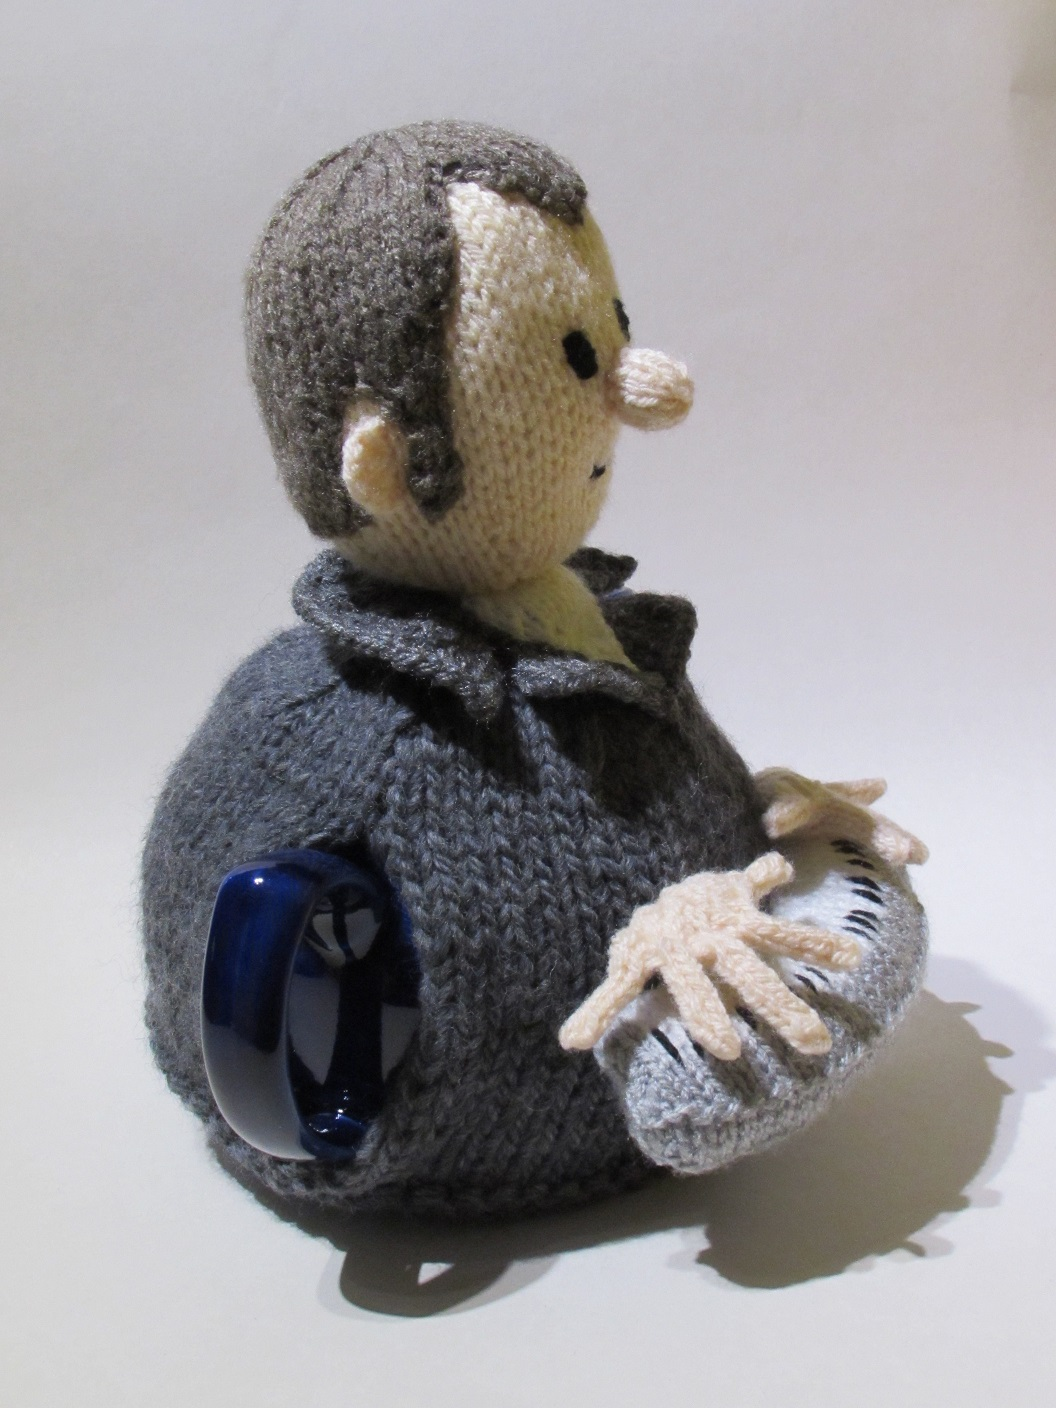 Music Man (Keyboard Player) knitting pattern